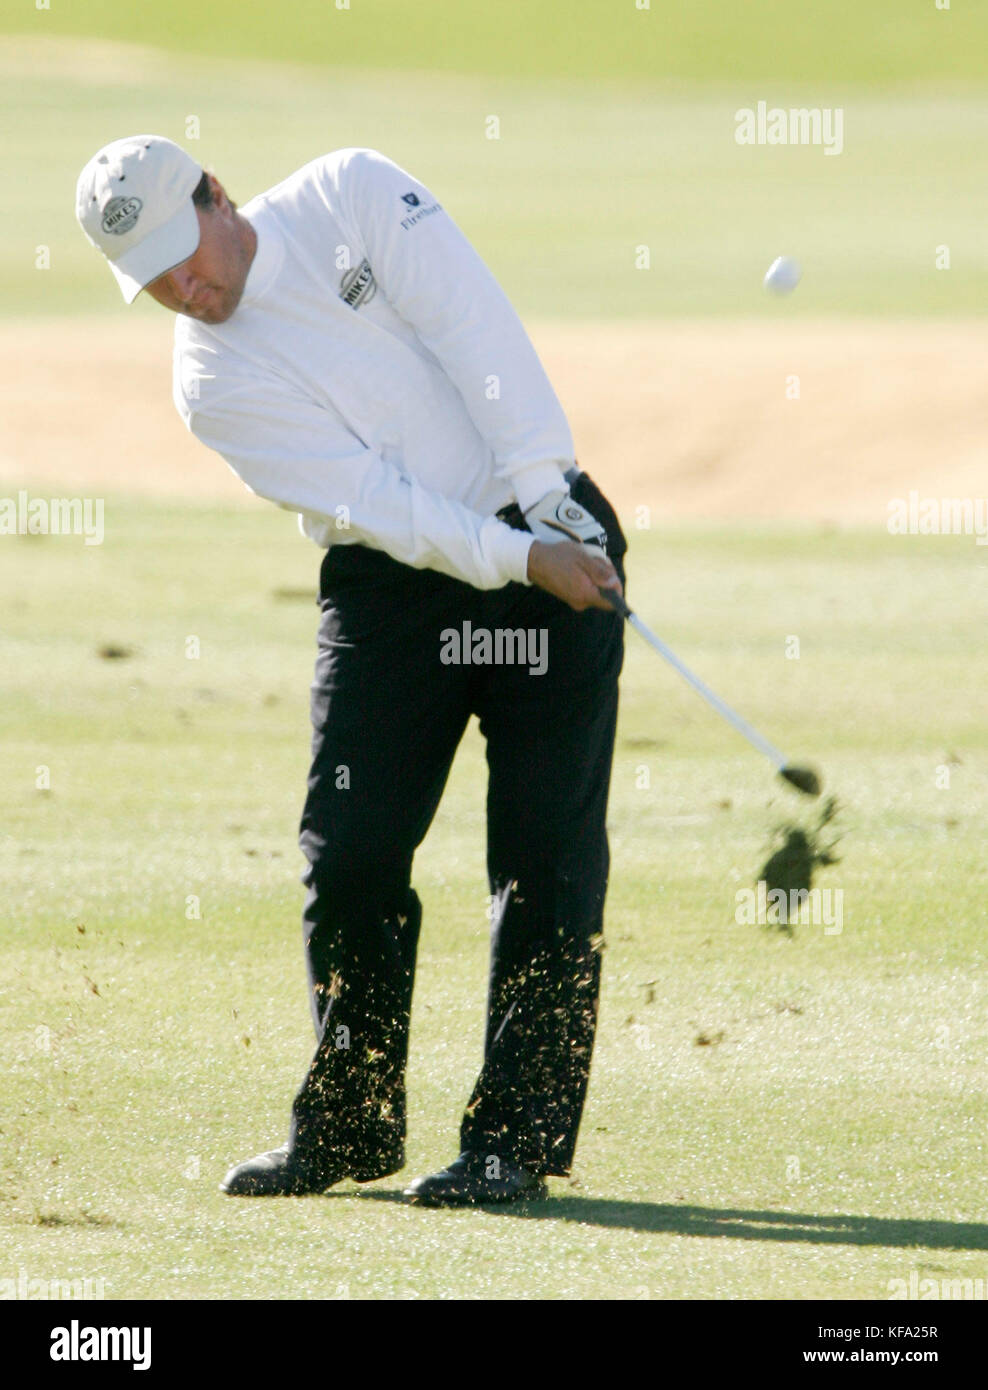 Golfer Carl Desjardins hits the ball off the  fairway of the 5th hole on the Nicklaus Course at  PGA West  in La - Stock Image